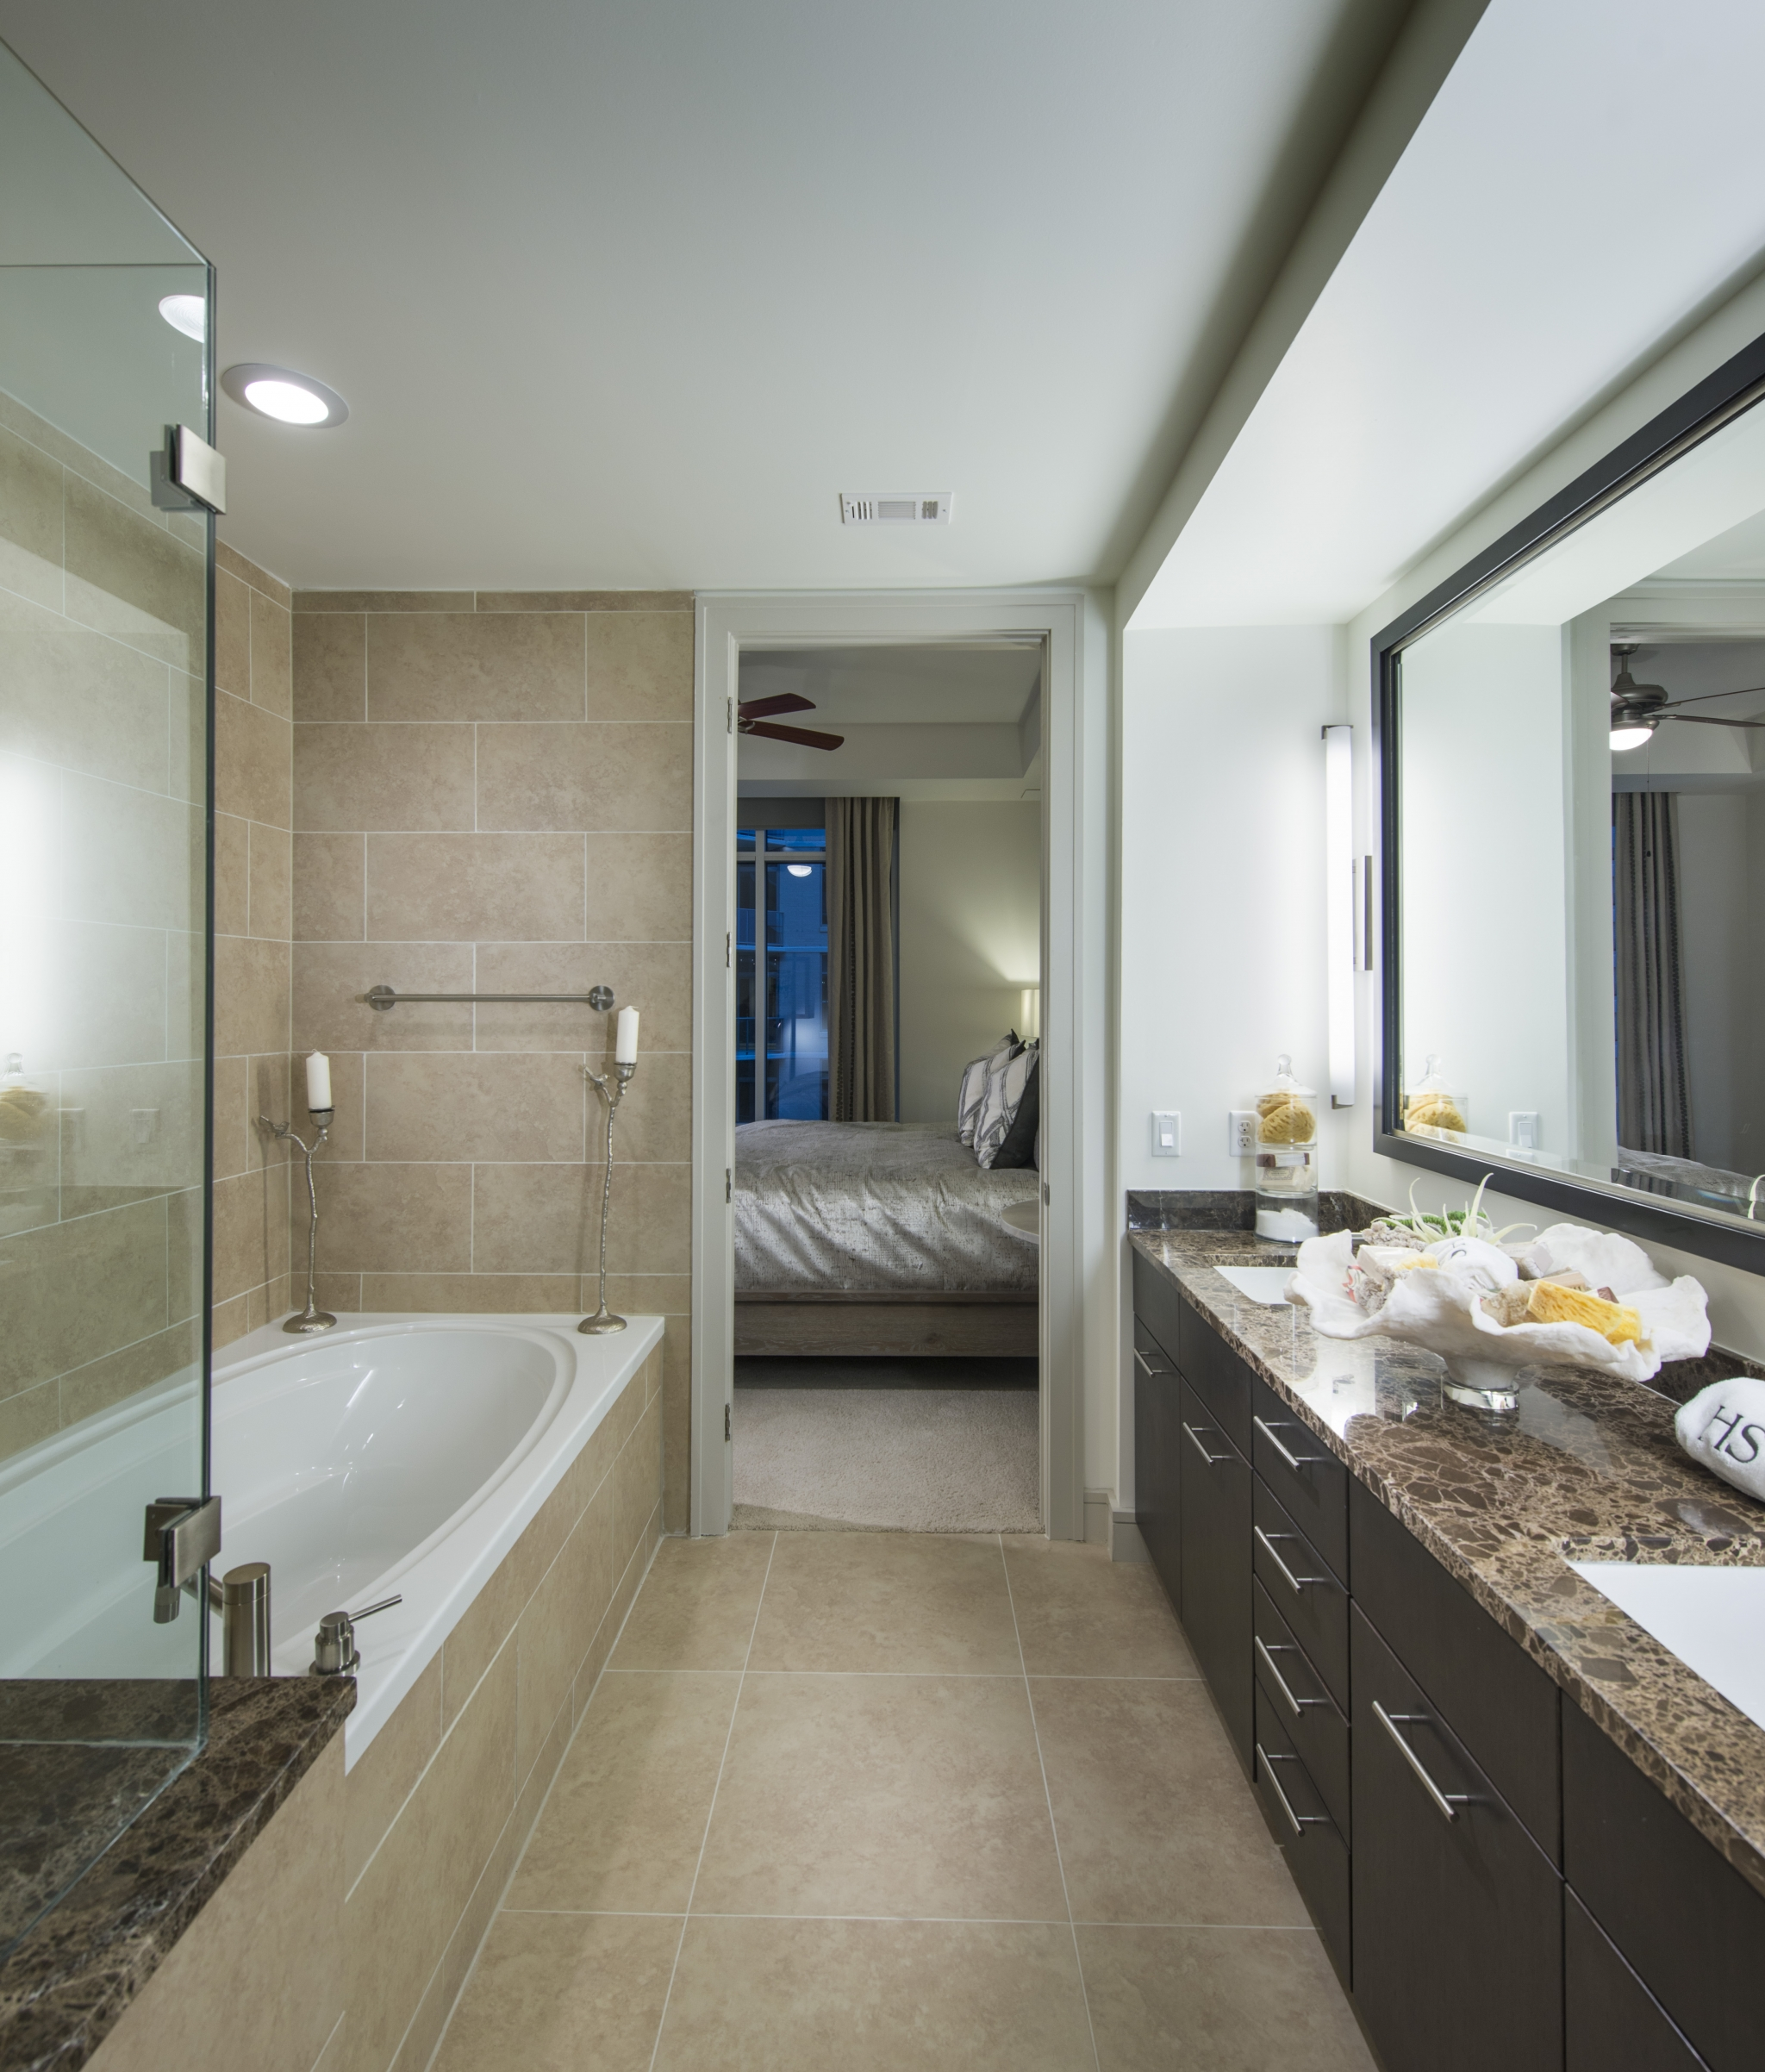 Image of Luxurious bathrooms with oval soaking tubs for Hanover Southampton